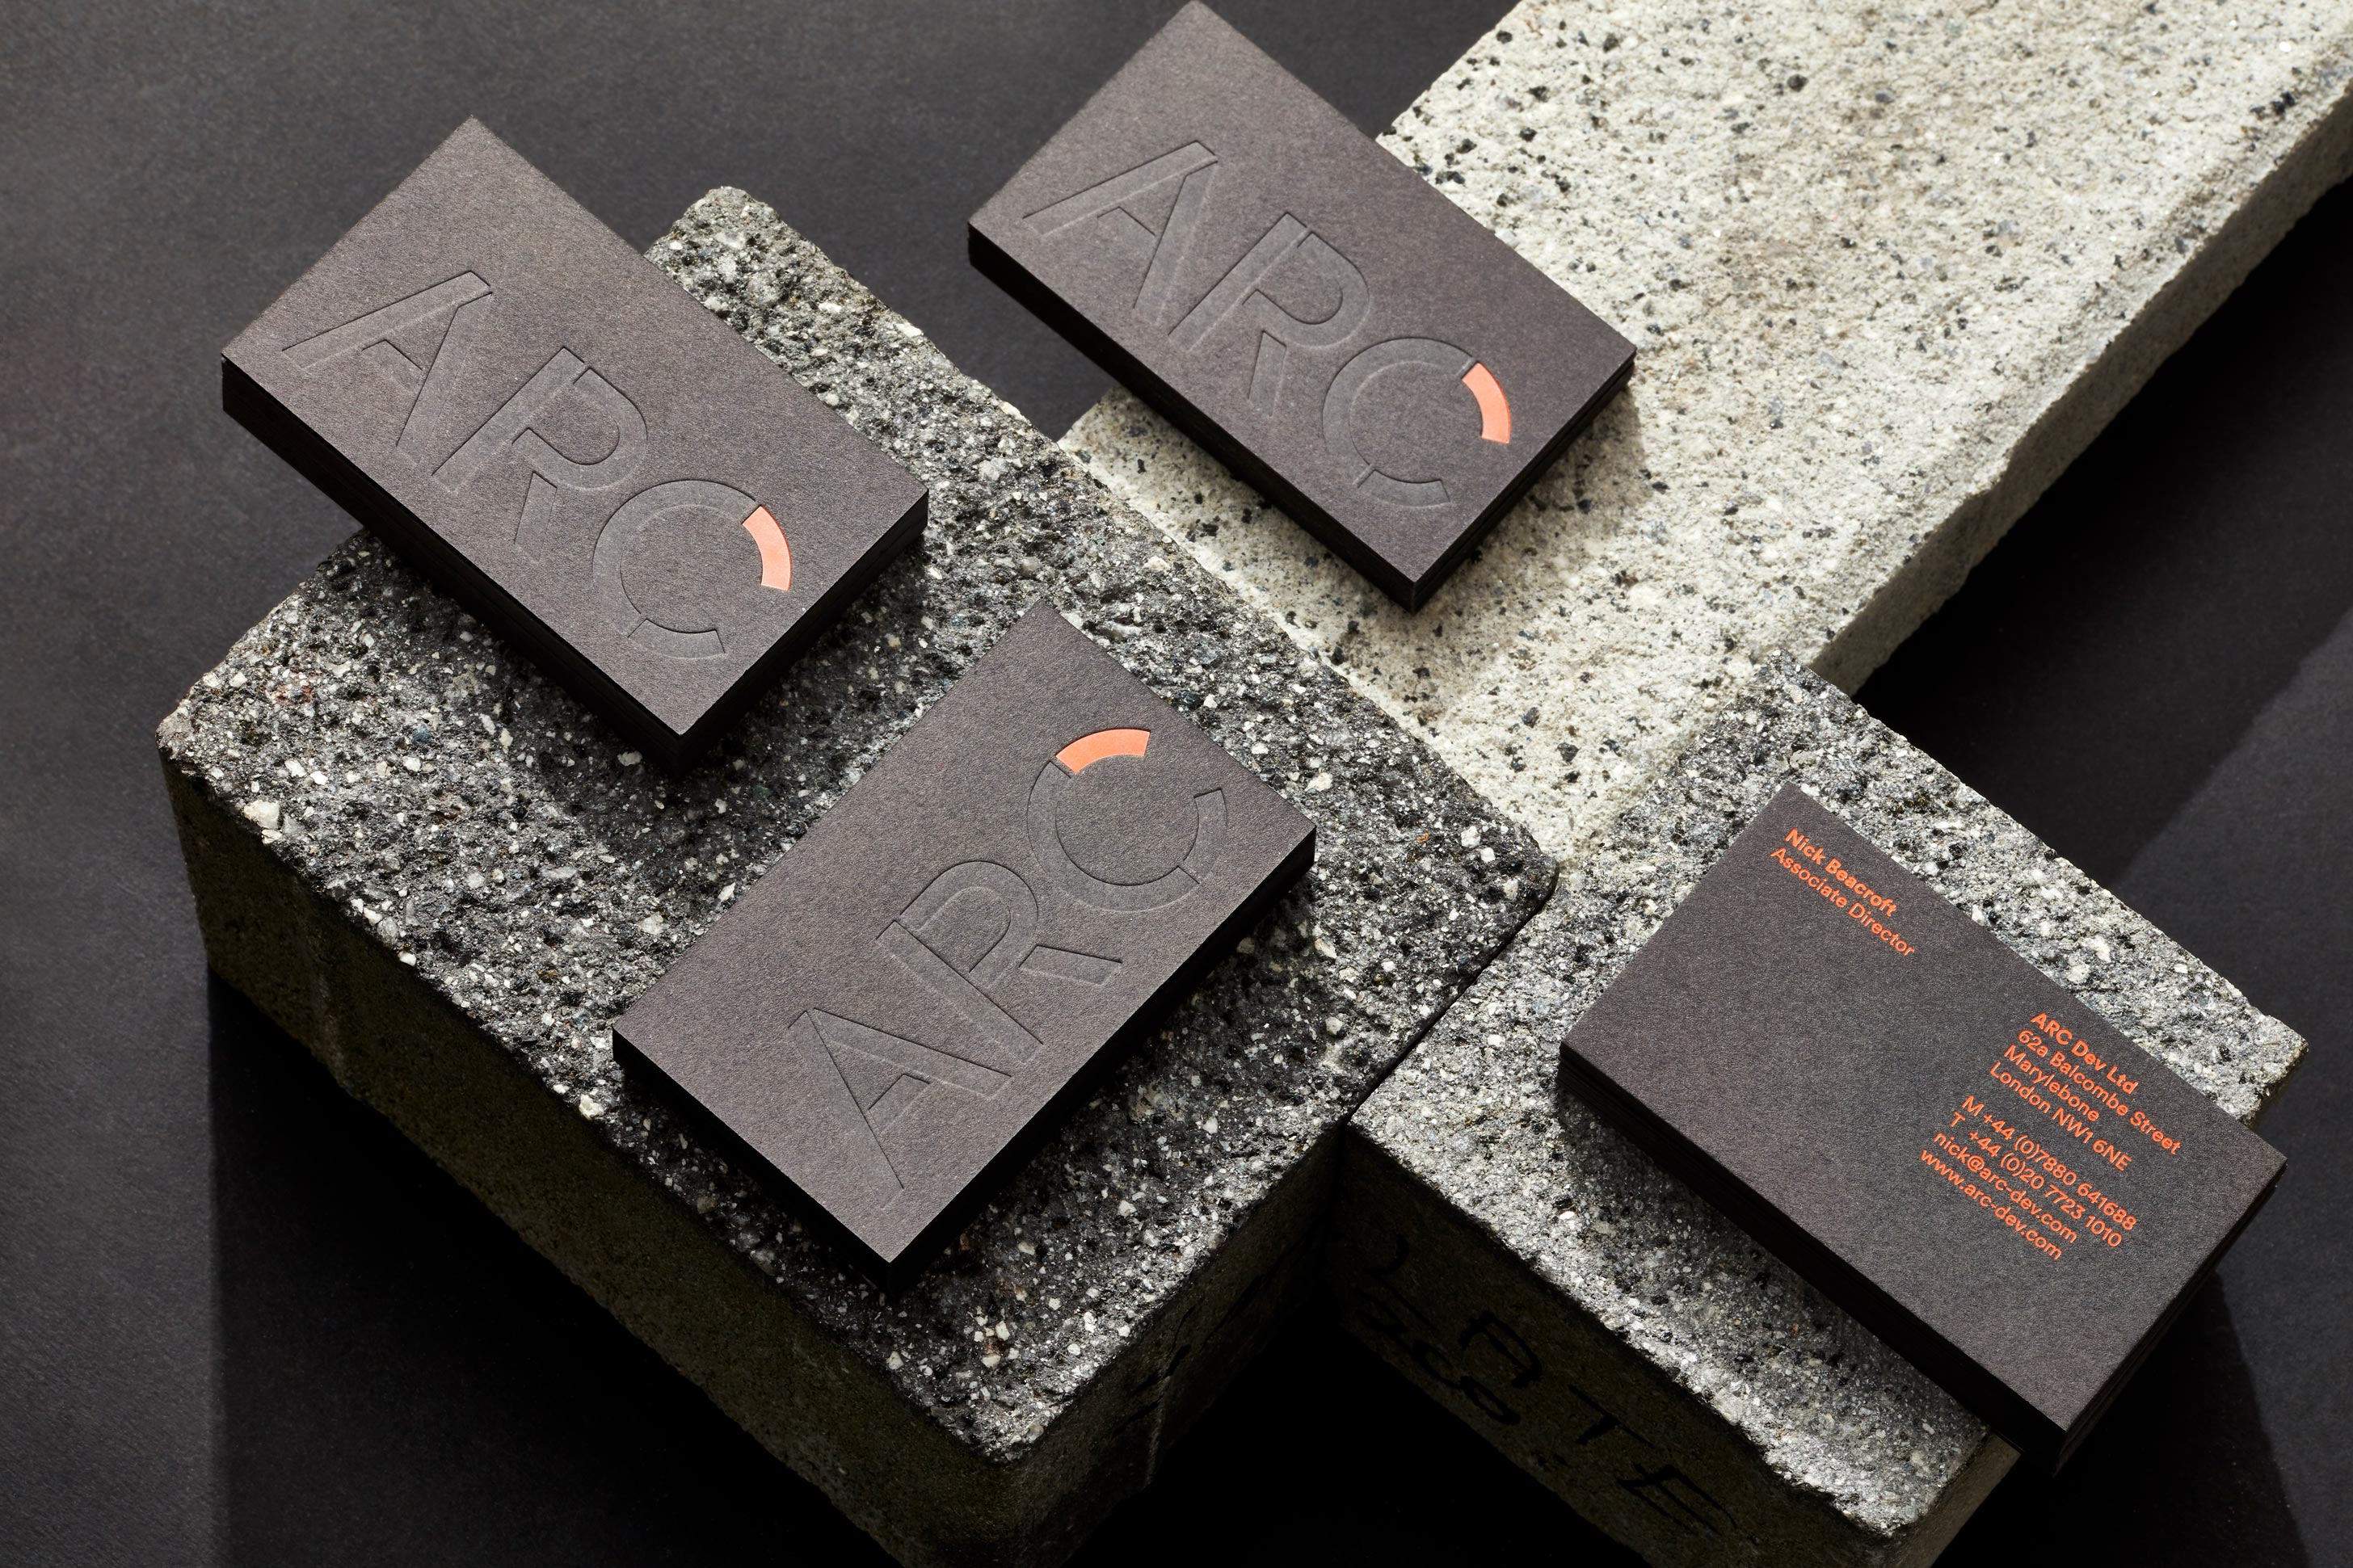 ARC architecture business cards 01